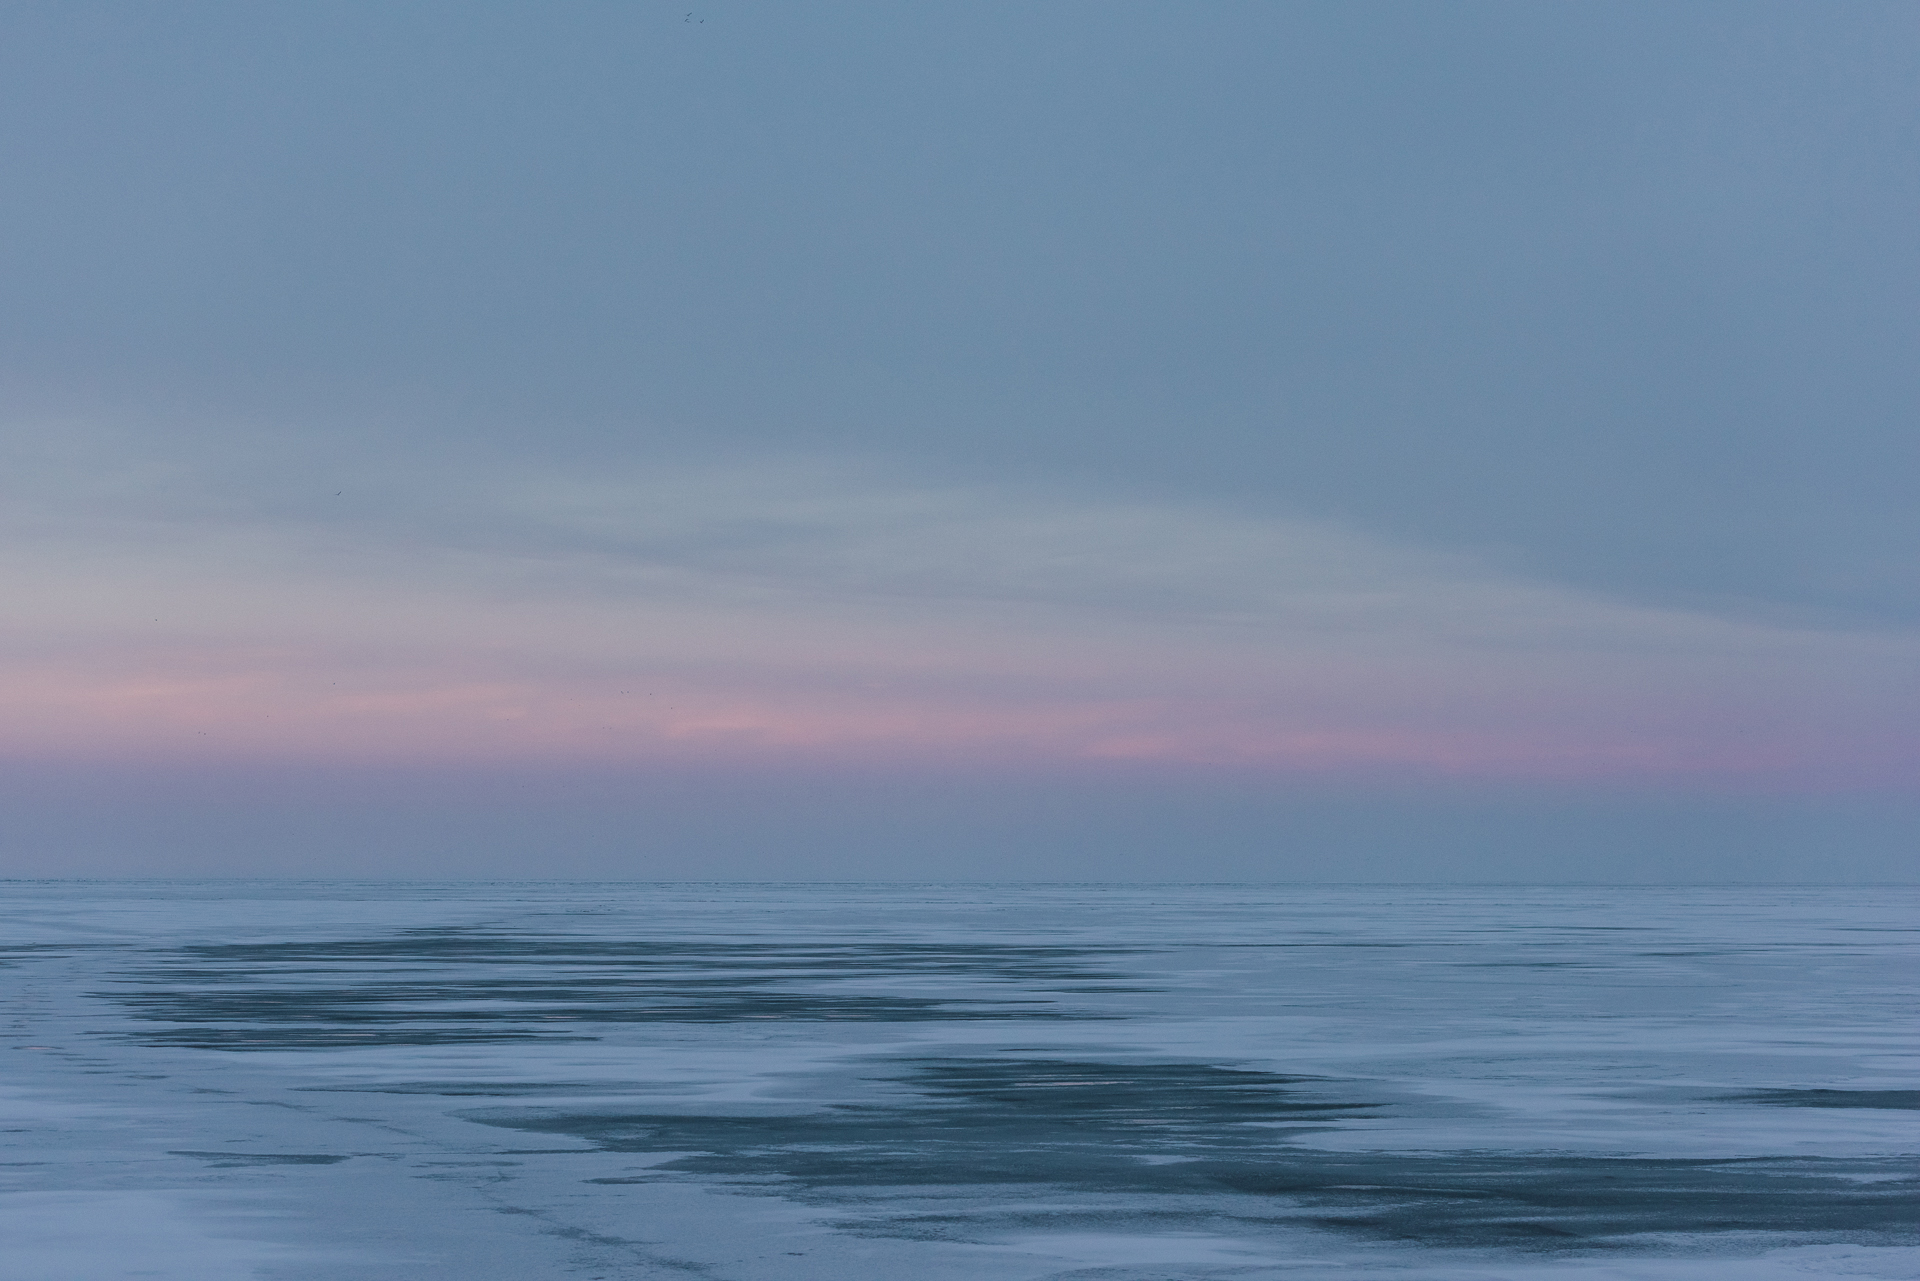 Lake Erie, February 29, 2019. © Dustin Franz